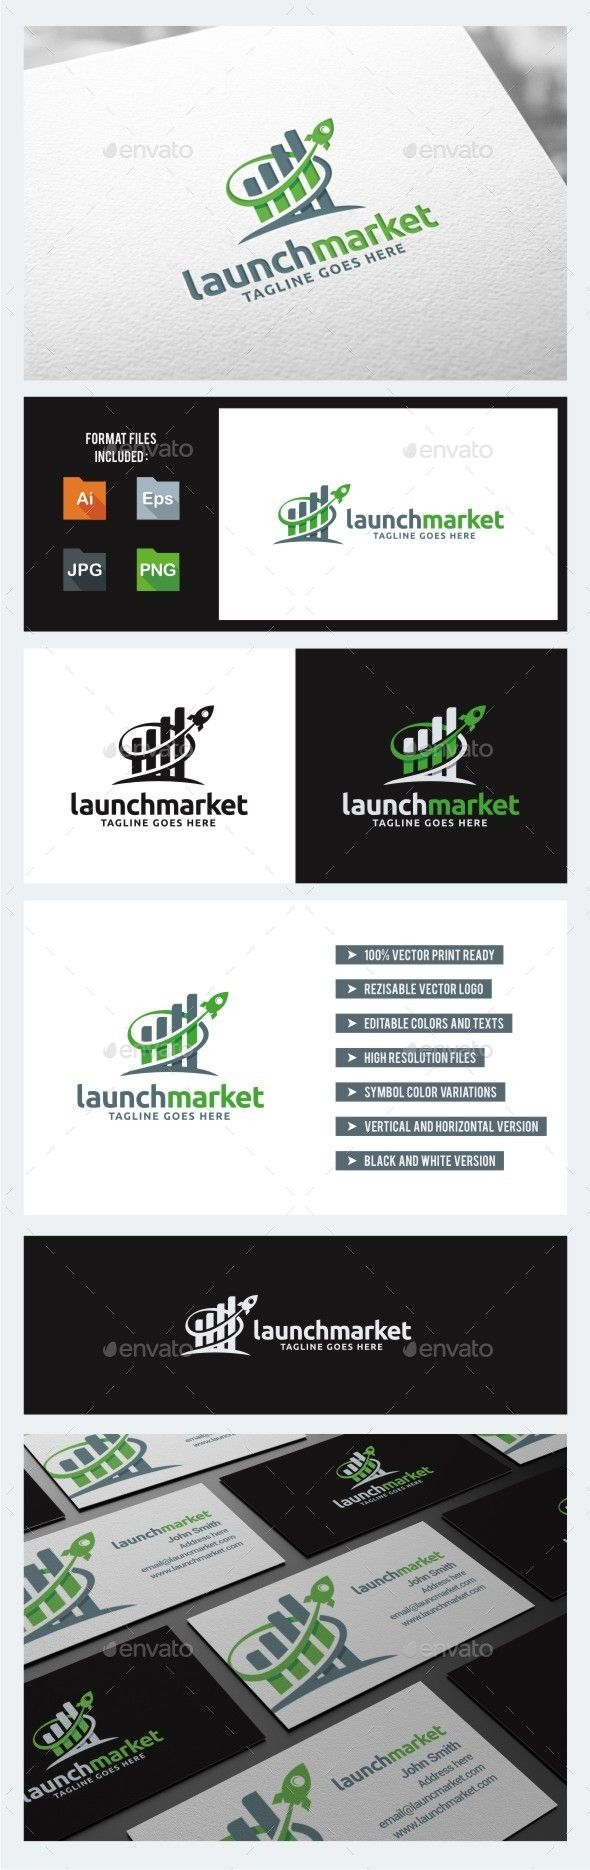 Launch Market Rocket  - Logo Design Template Vector #logotype Download it here: http://graphicriver.net/item/launch-market-rocket-logo-template/10756546?s_rank=834?ref=nexion